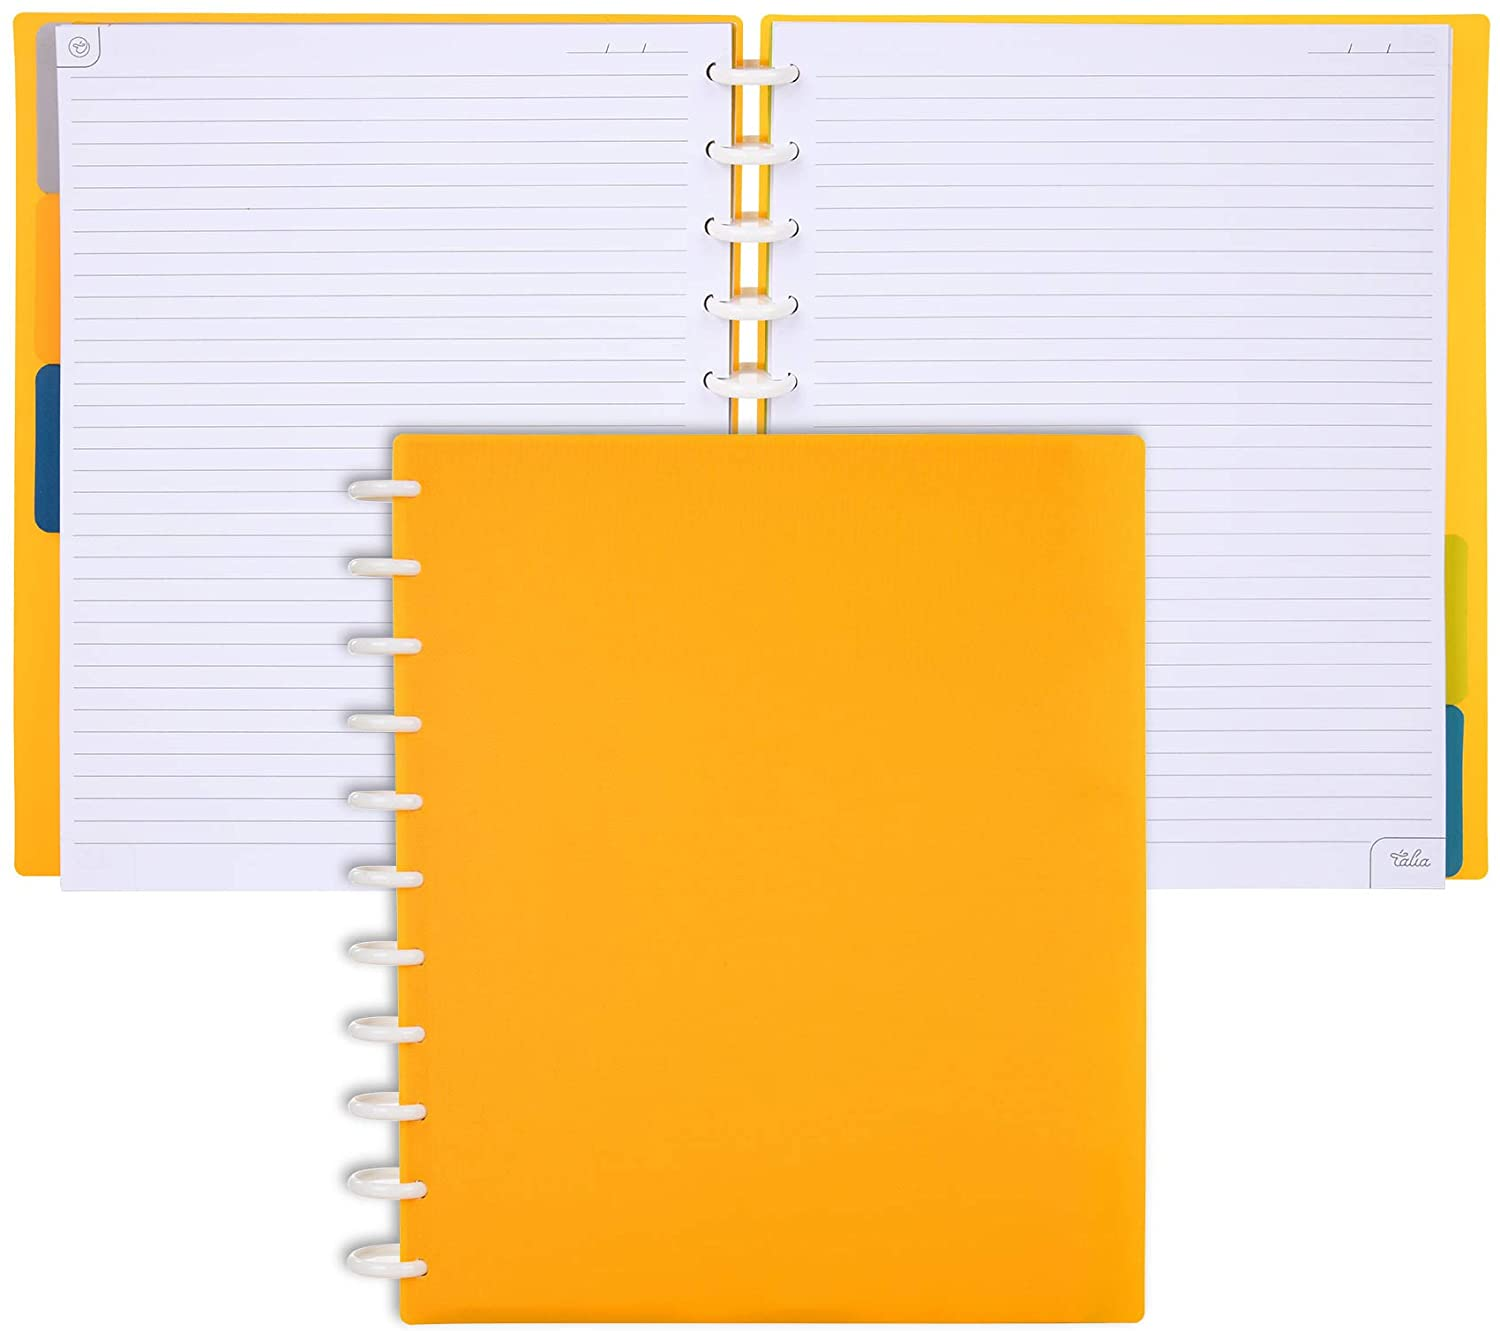 Talia Discbound Notebooks, BBQ Mustard, Letter (8.5in x 11in)- Customizable, 100 Sheets of Heavyweight Paper, 12 Monthly Calendar Pages, 5 Subject, tab dividers, Fun Stickers to Personalize